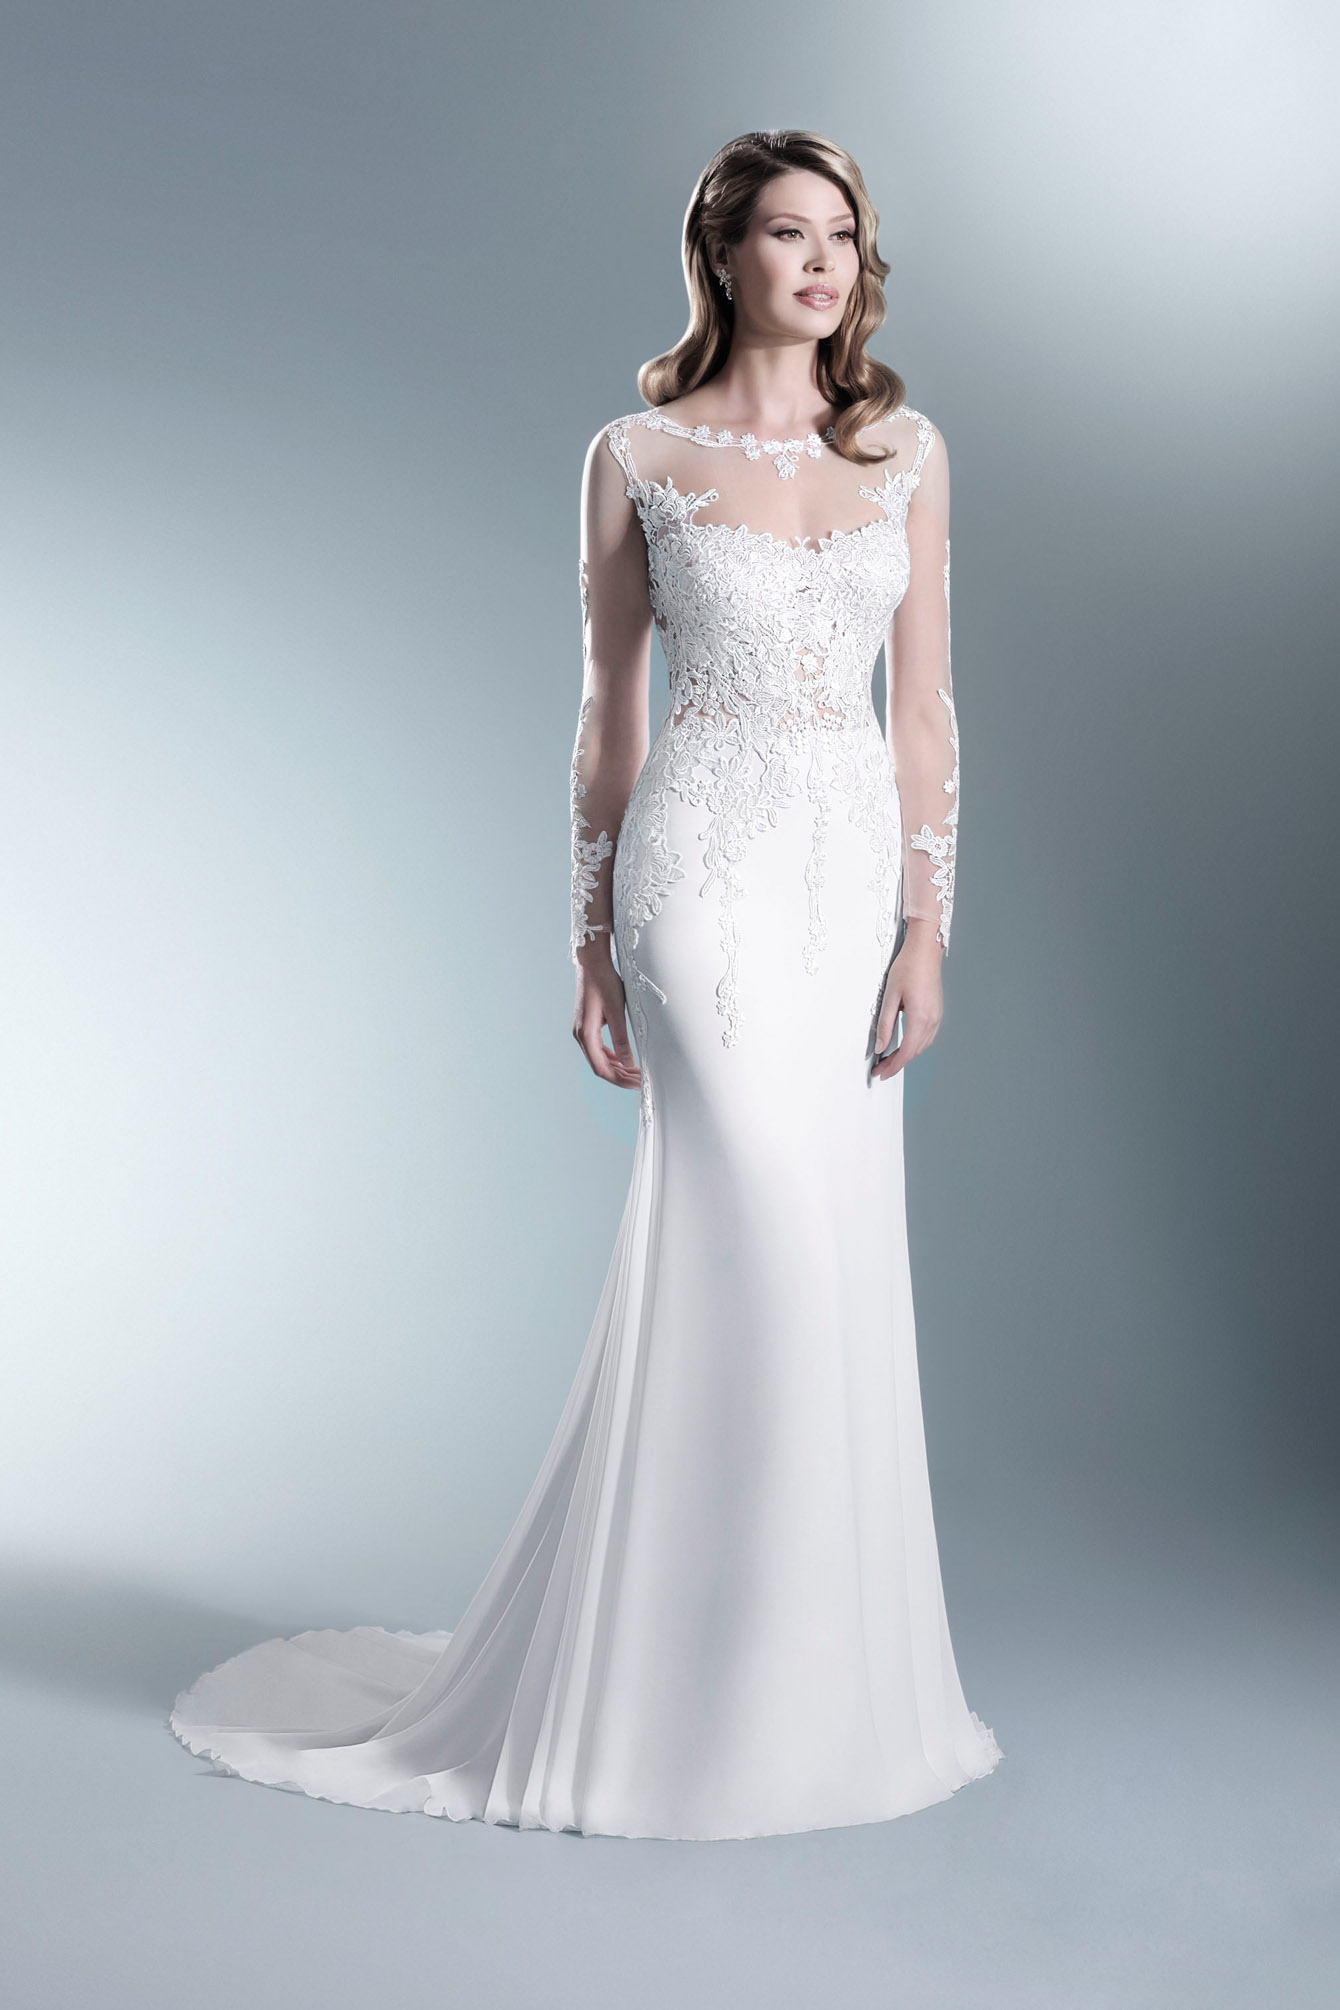 TO-673T - The One 2017 - Wedding dresses - Agnes - lace wedding ...